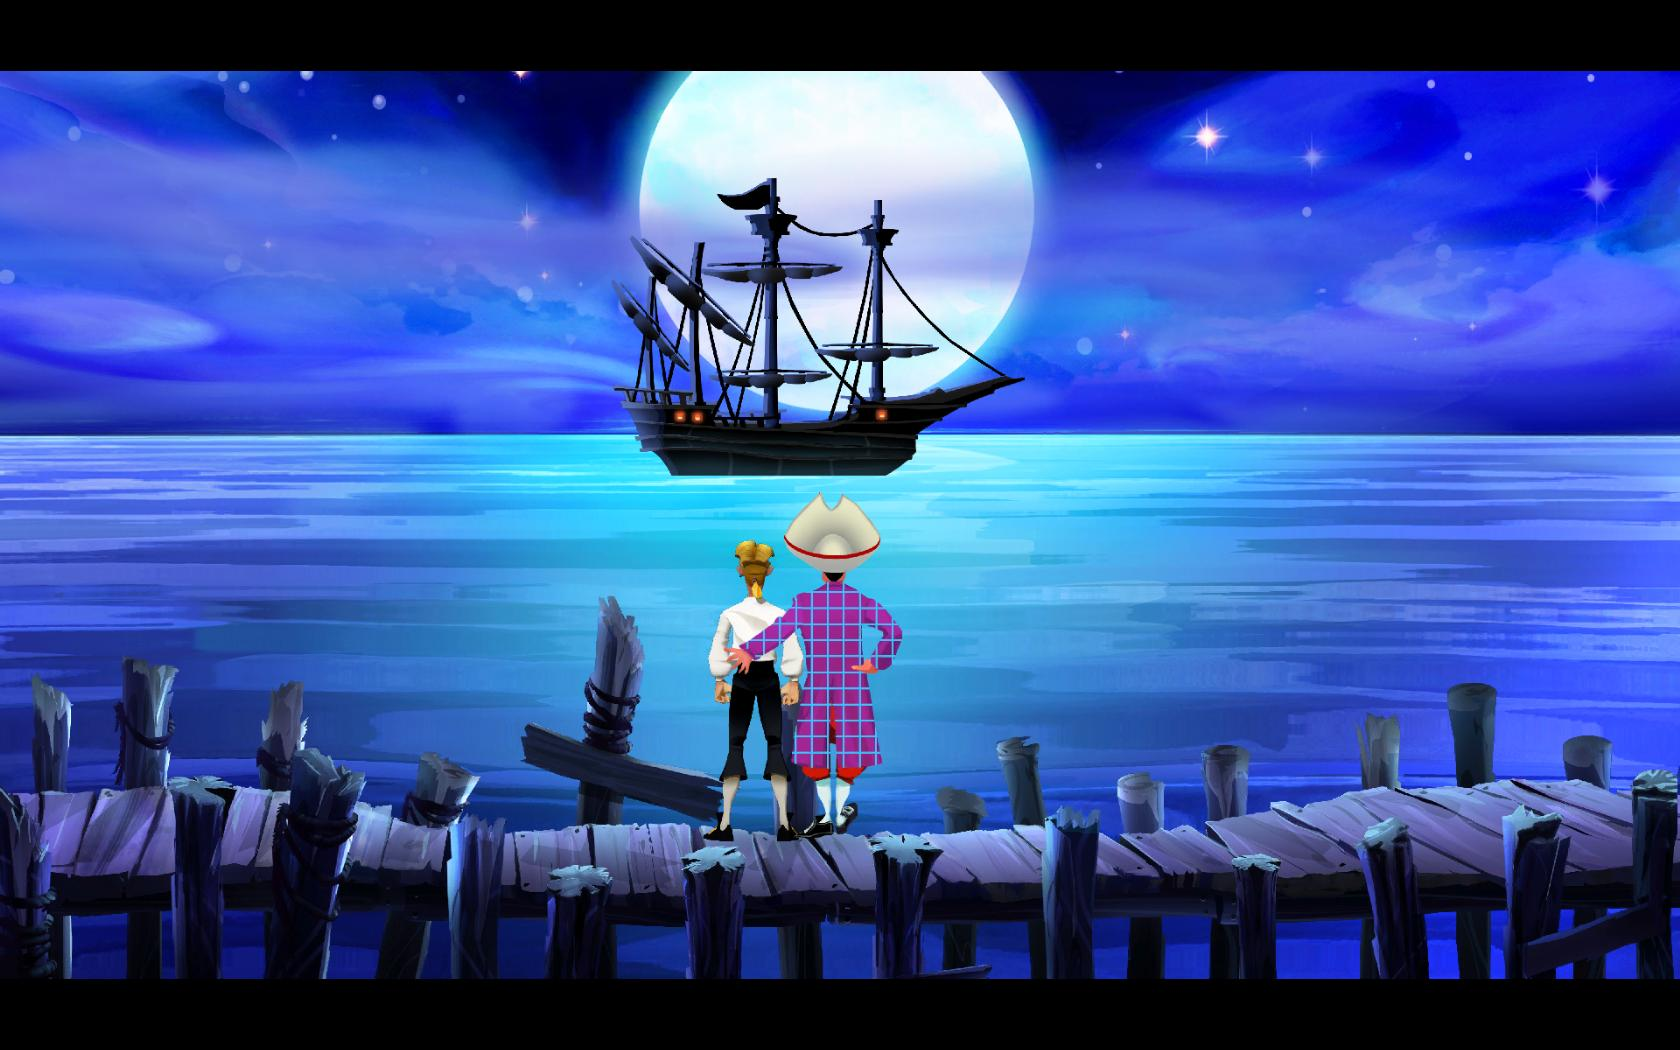 Mario Wallpaper Hd The Secret Of Monkey Island Review Puzzle Adventure Game